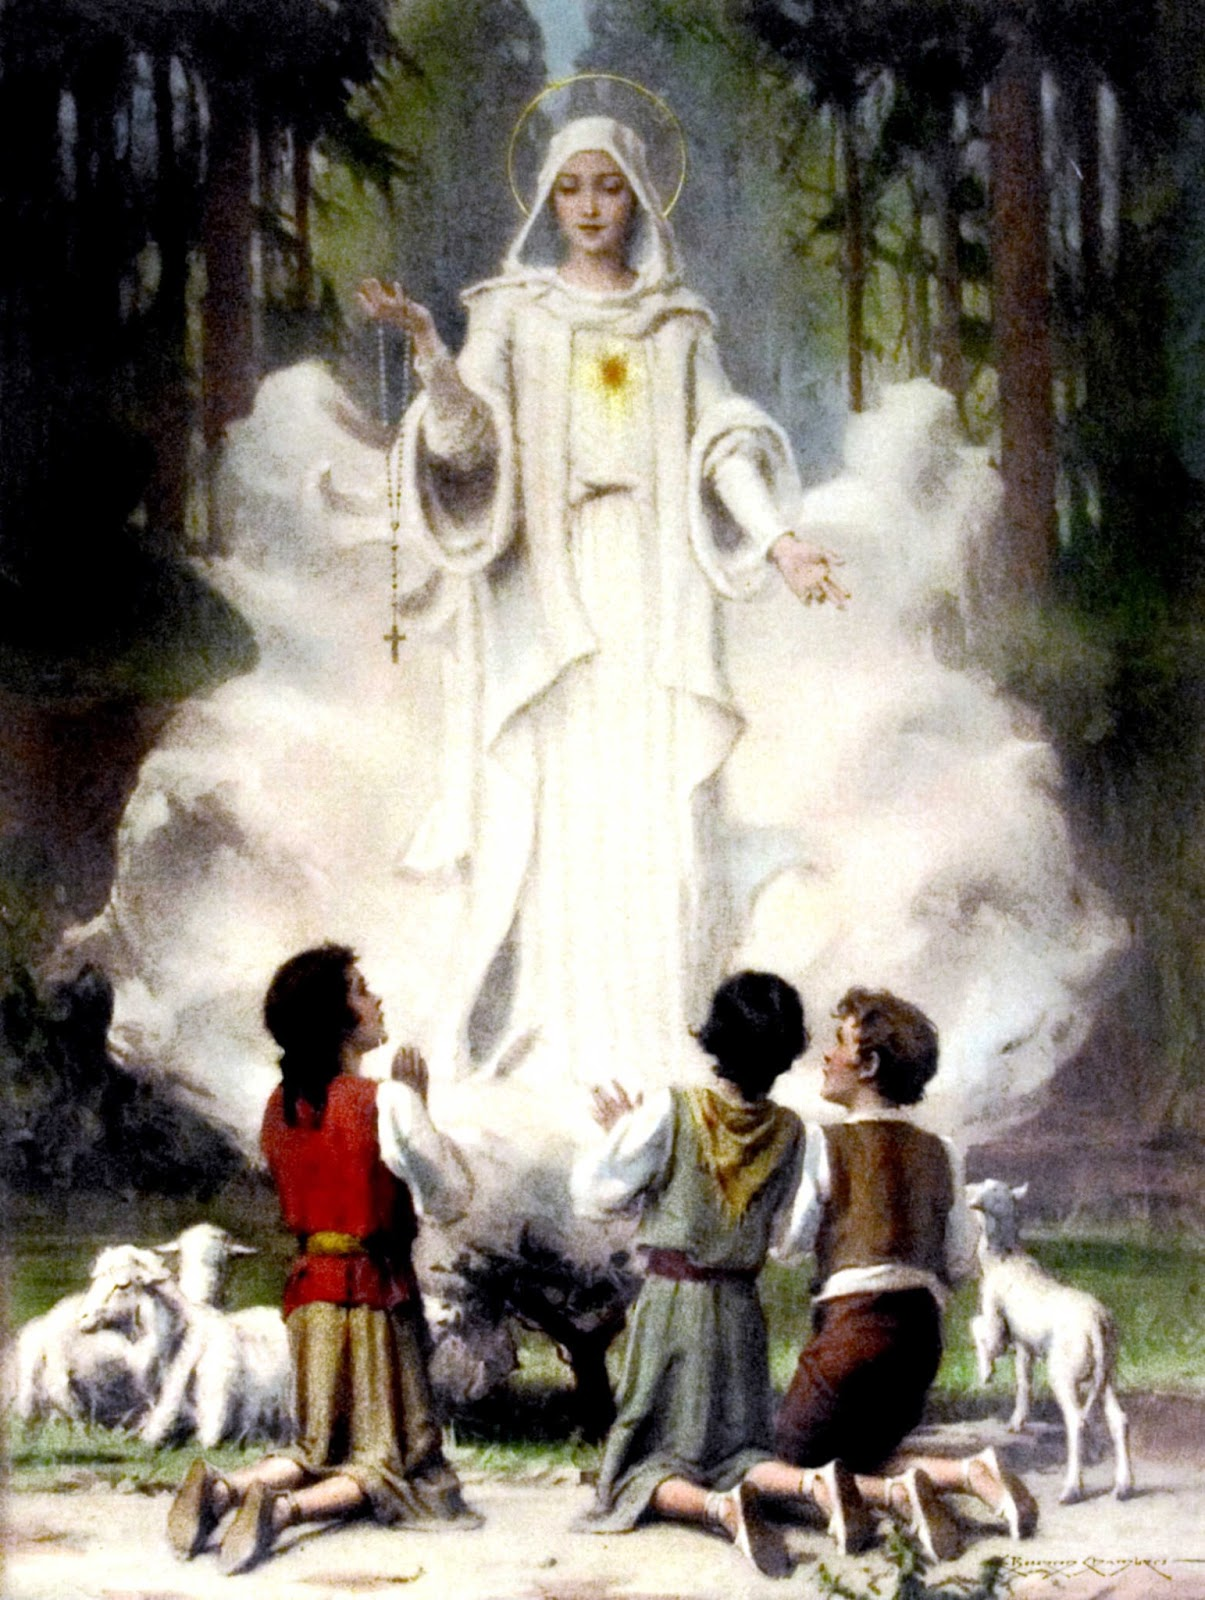 Our_lady_of_fatima - Apparitions - .jpg